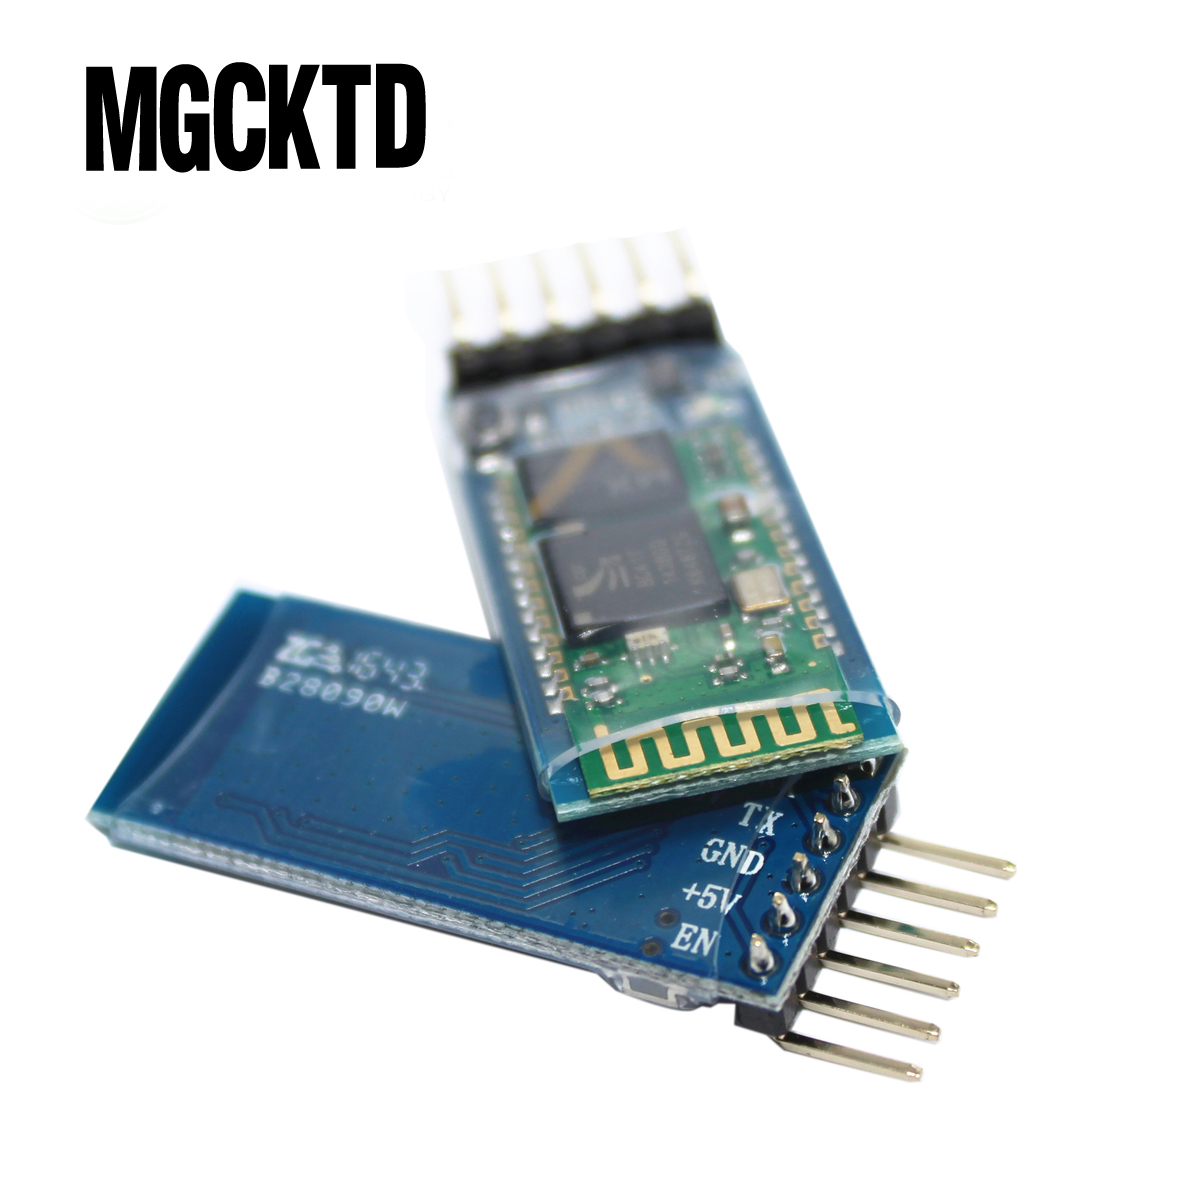 Original 10pcs/lot 2.4G GHz Serial Port Bluetooth Module HC 05 Master Slave For GPS Receiver MCU  HC 05-in Integrated Circuits from Electronic Components & Supplies    1